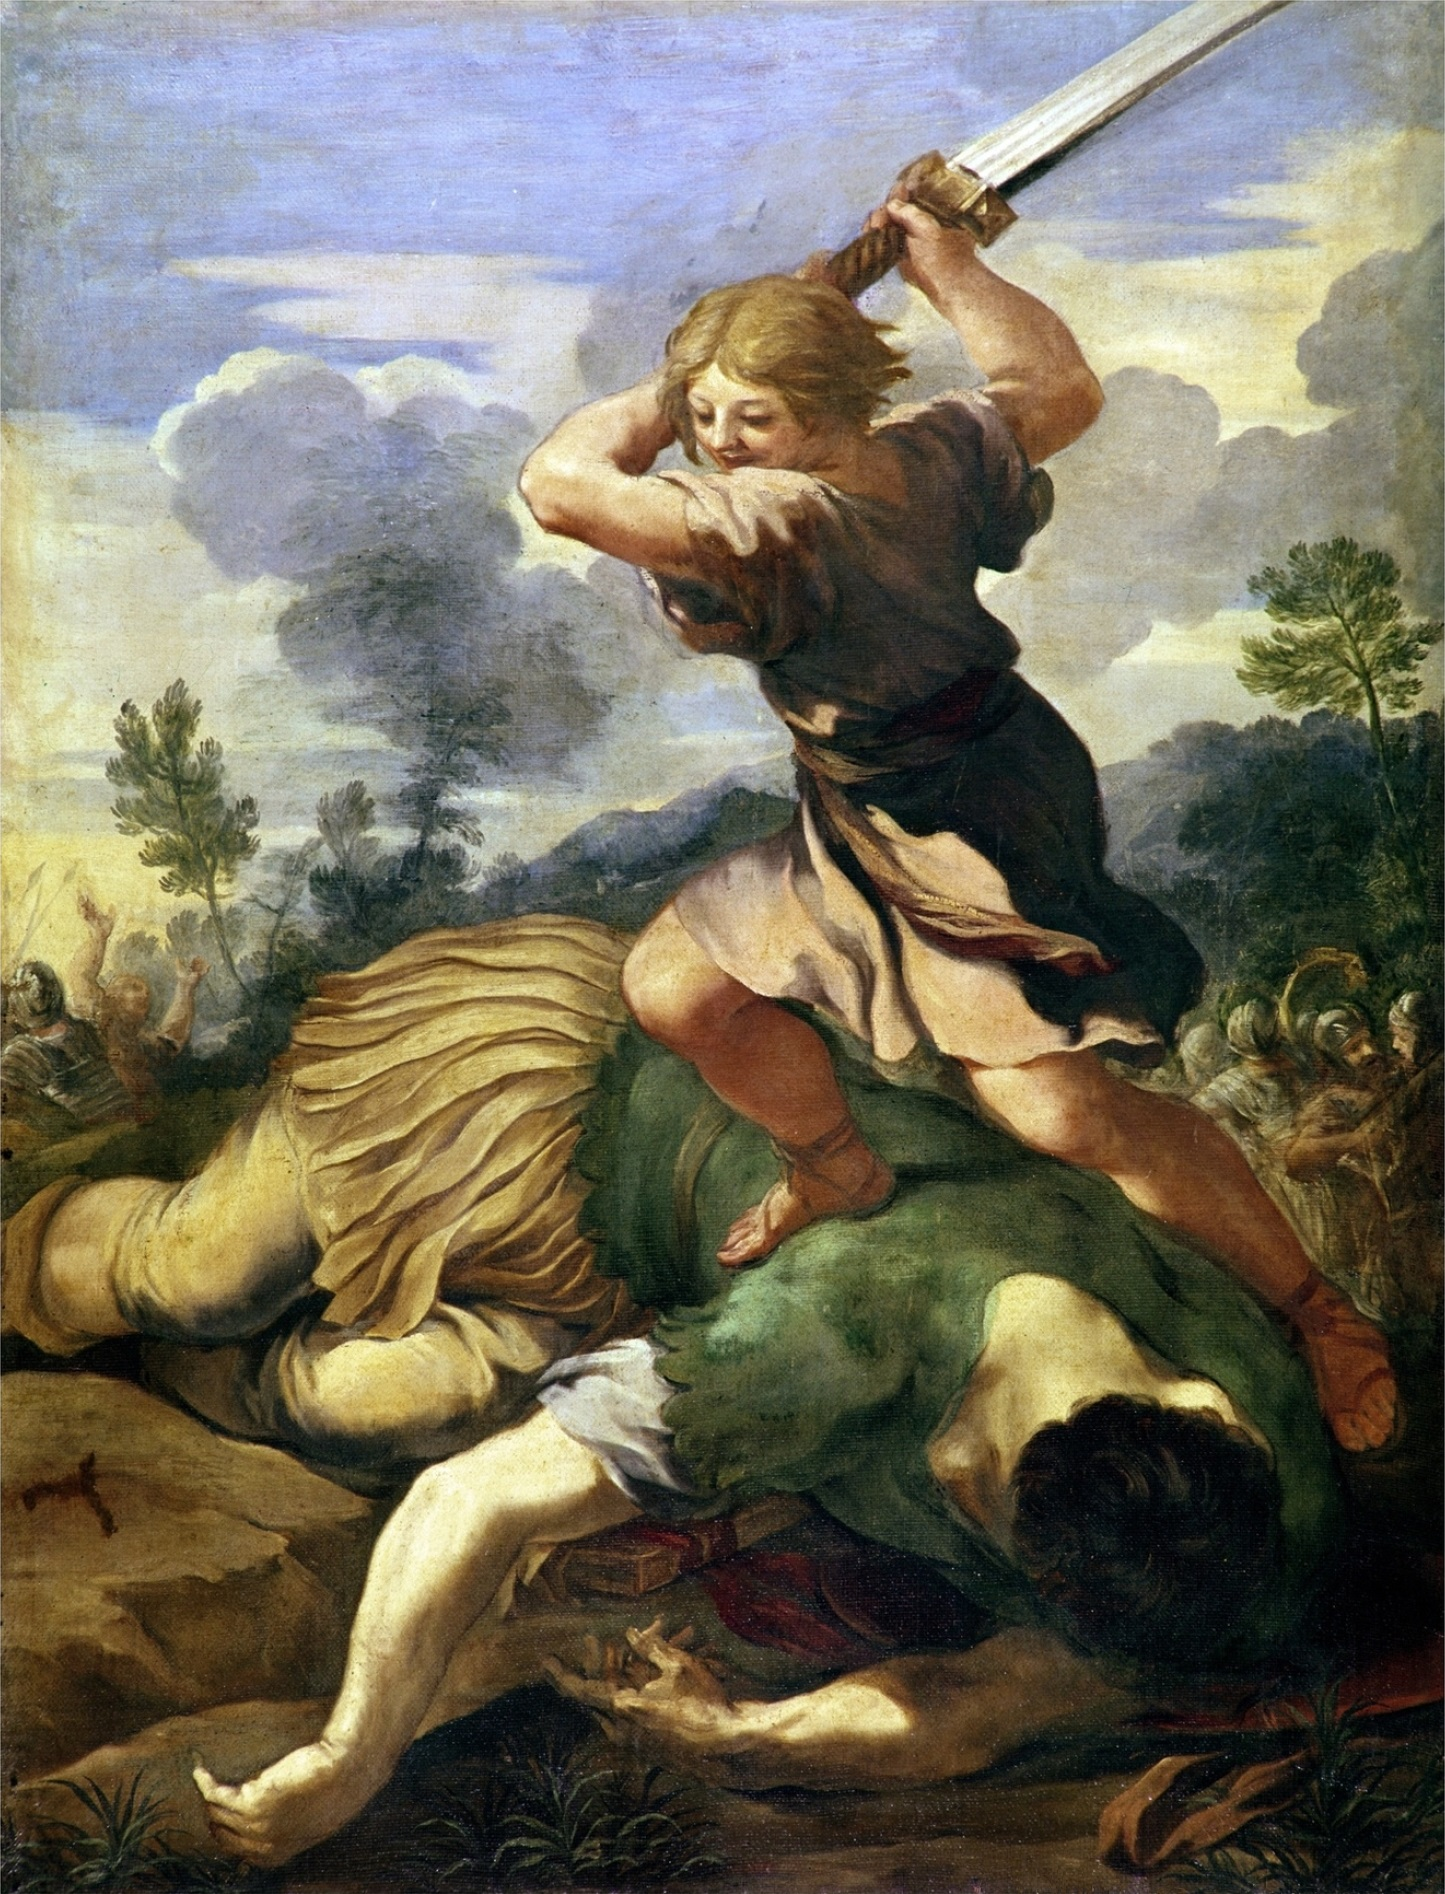 David and goliath renaissance painting